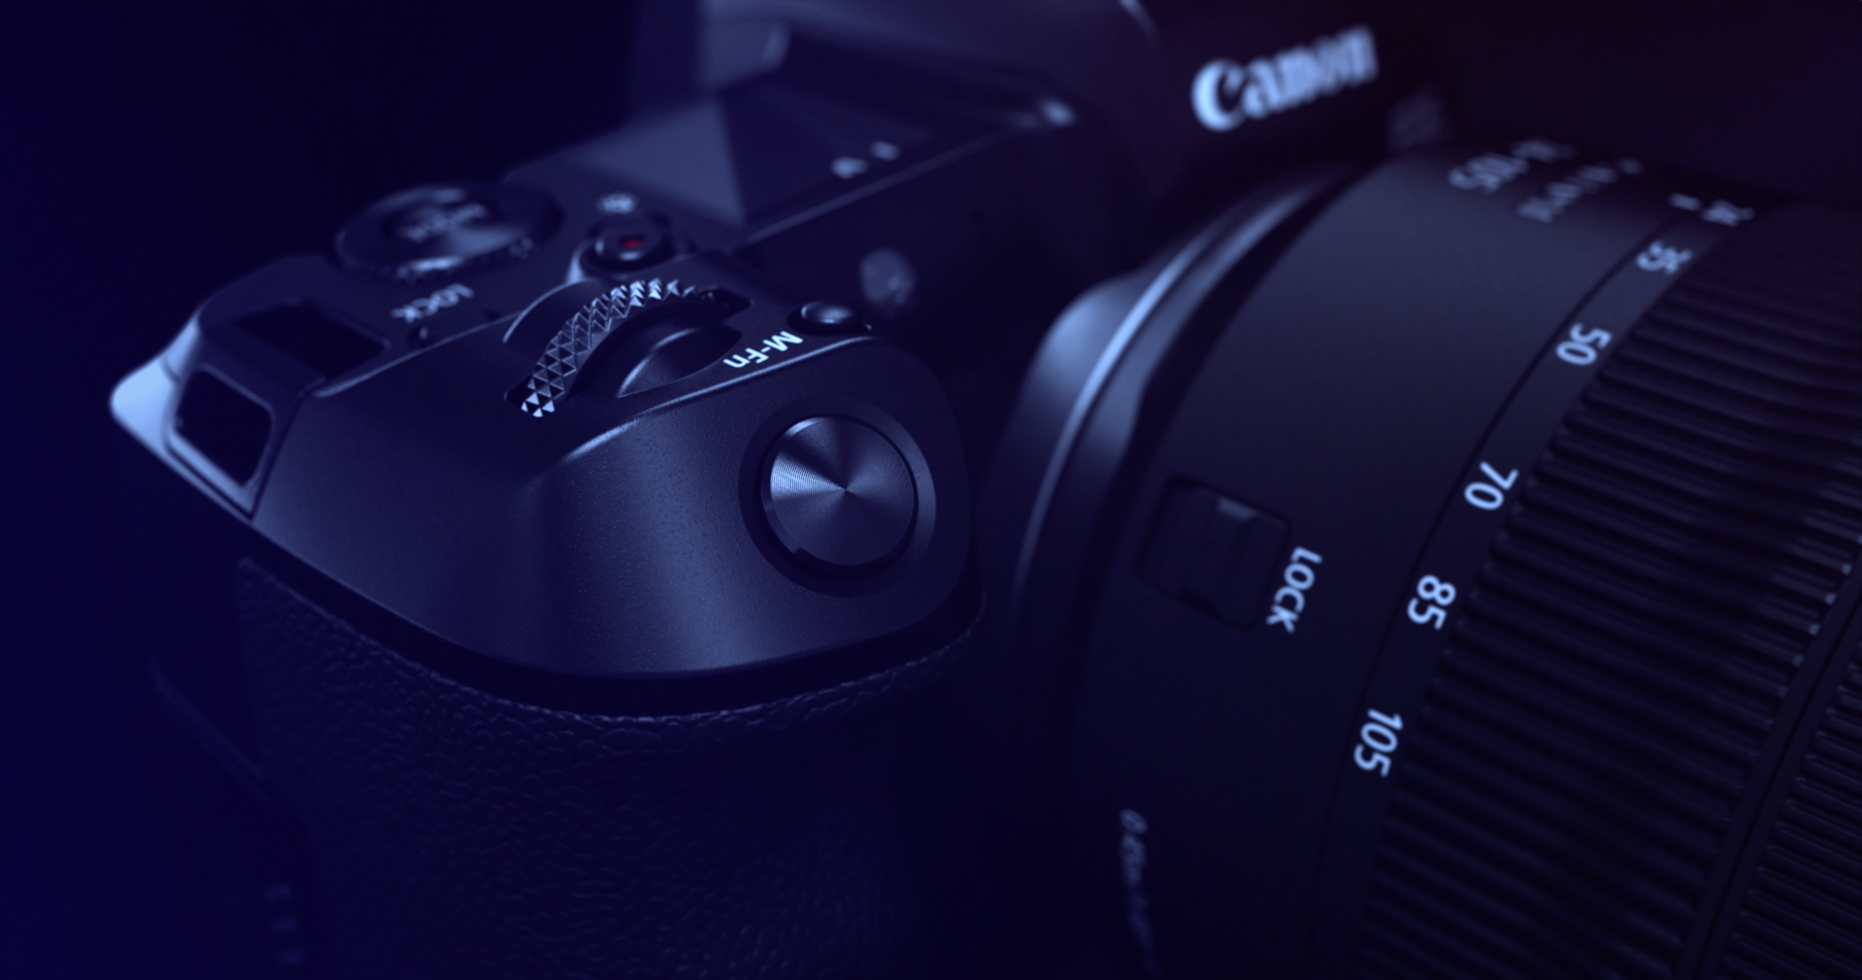 Close-up details of a Canon EOS R camera